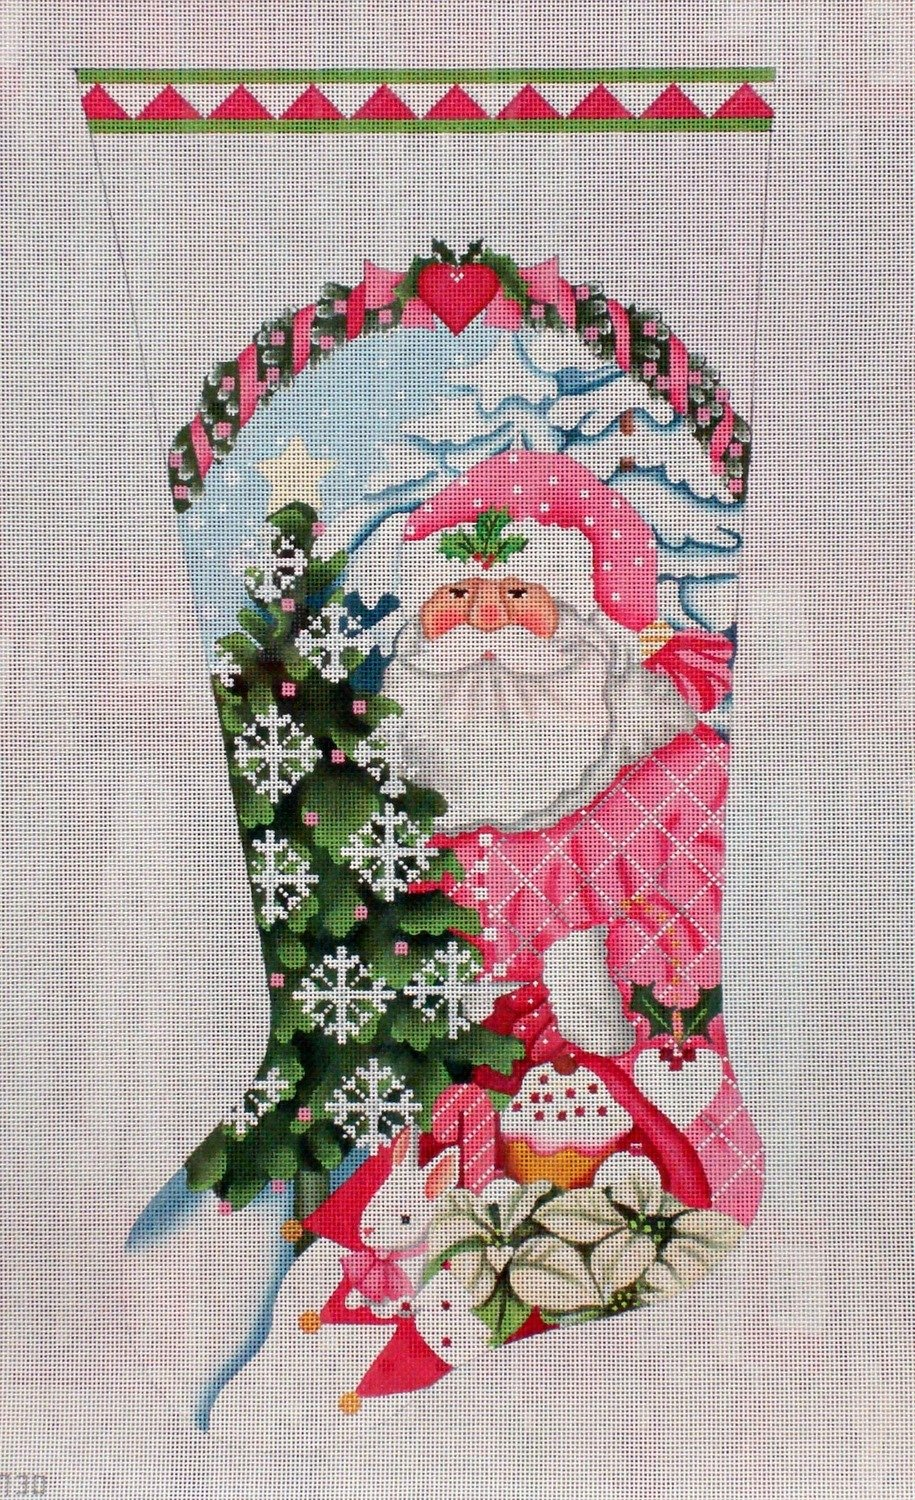 Pink Santa Stocking    (handpainted needlepoint canvas by Melissa Shirley)